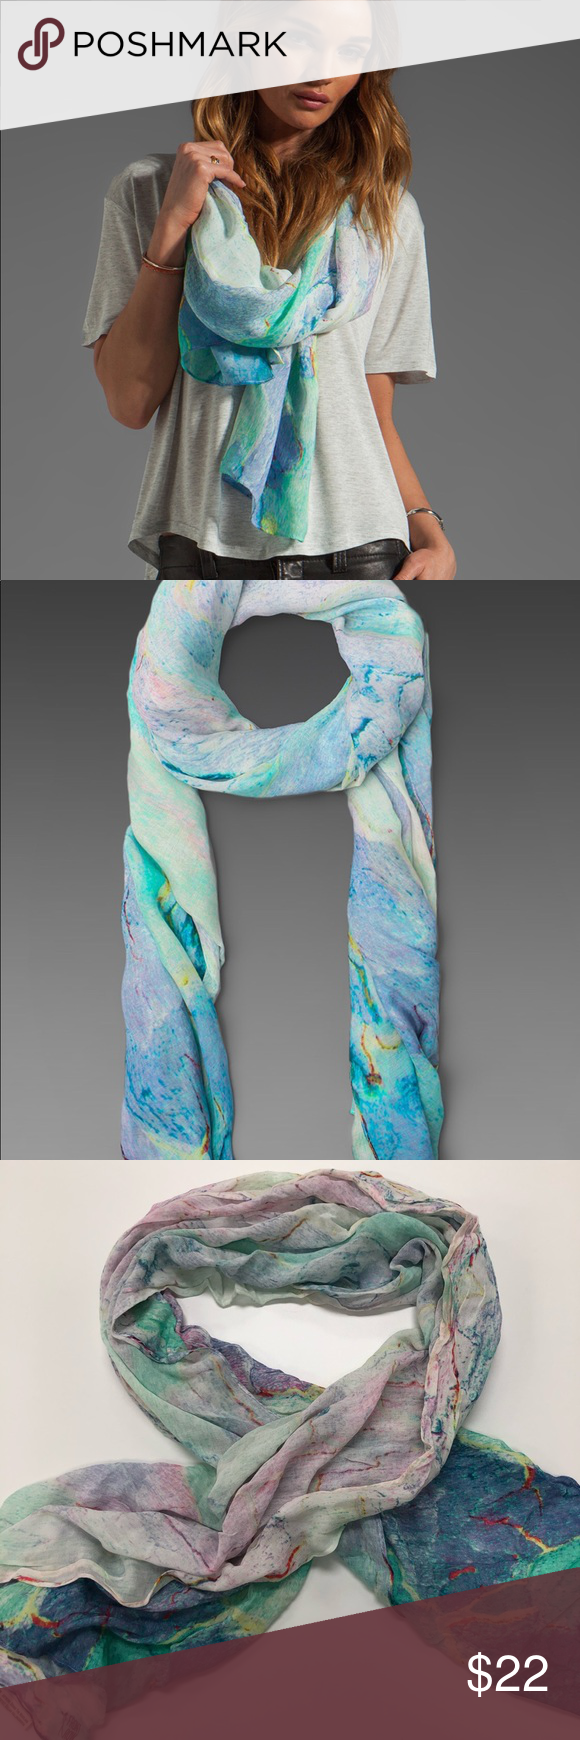 Sold Revolve Front Row Society Multicolored Scarf Multi Coloured Scarves Front Row The Row